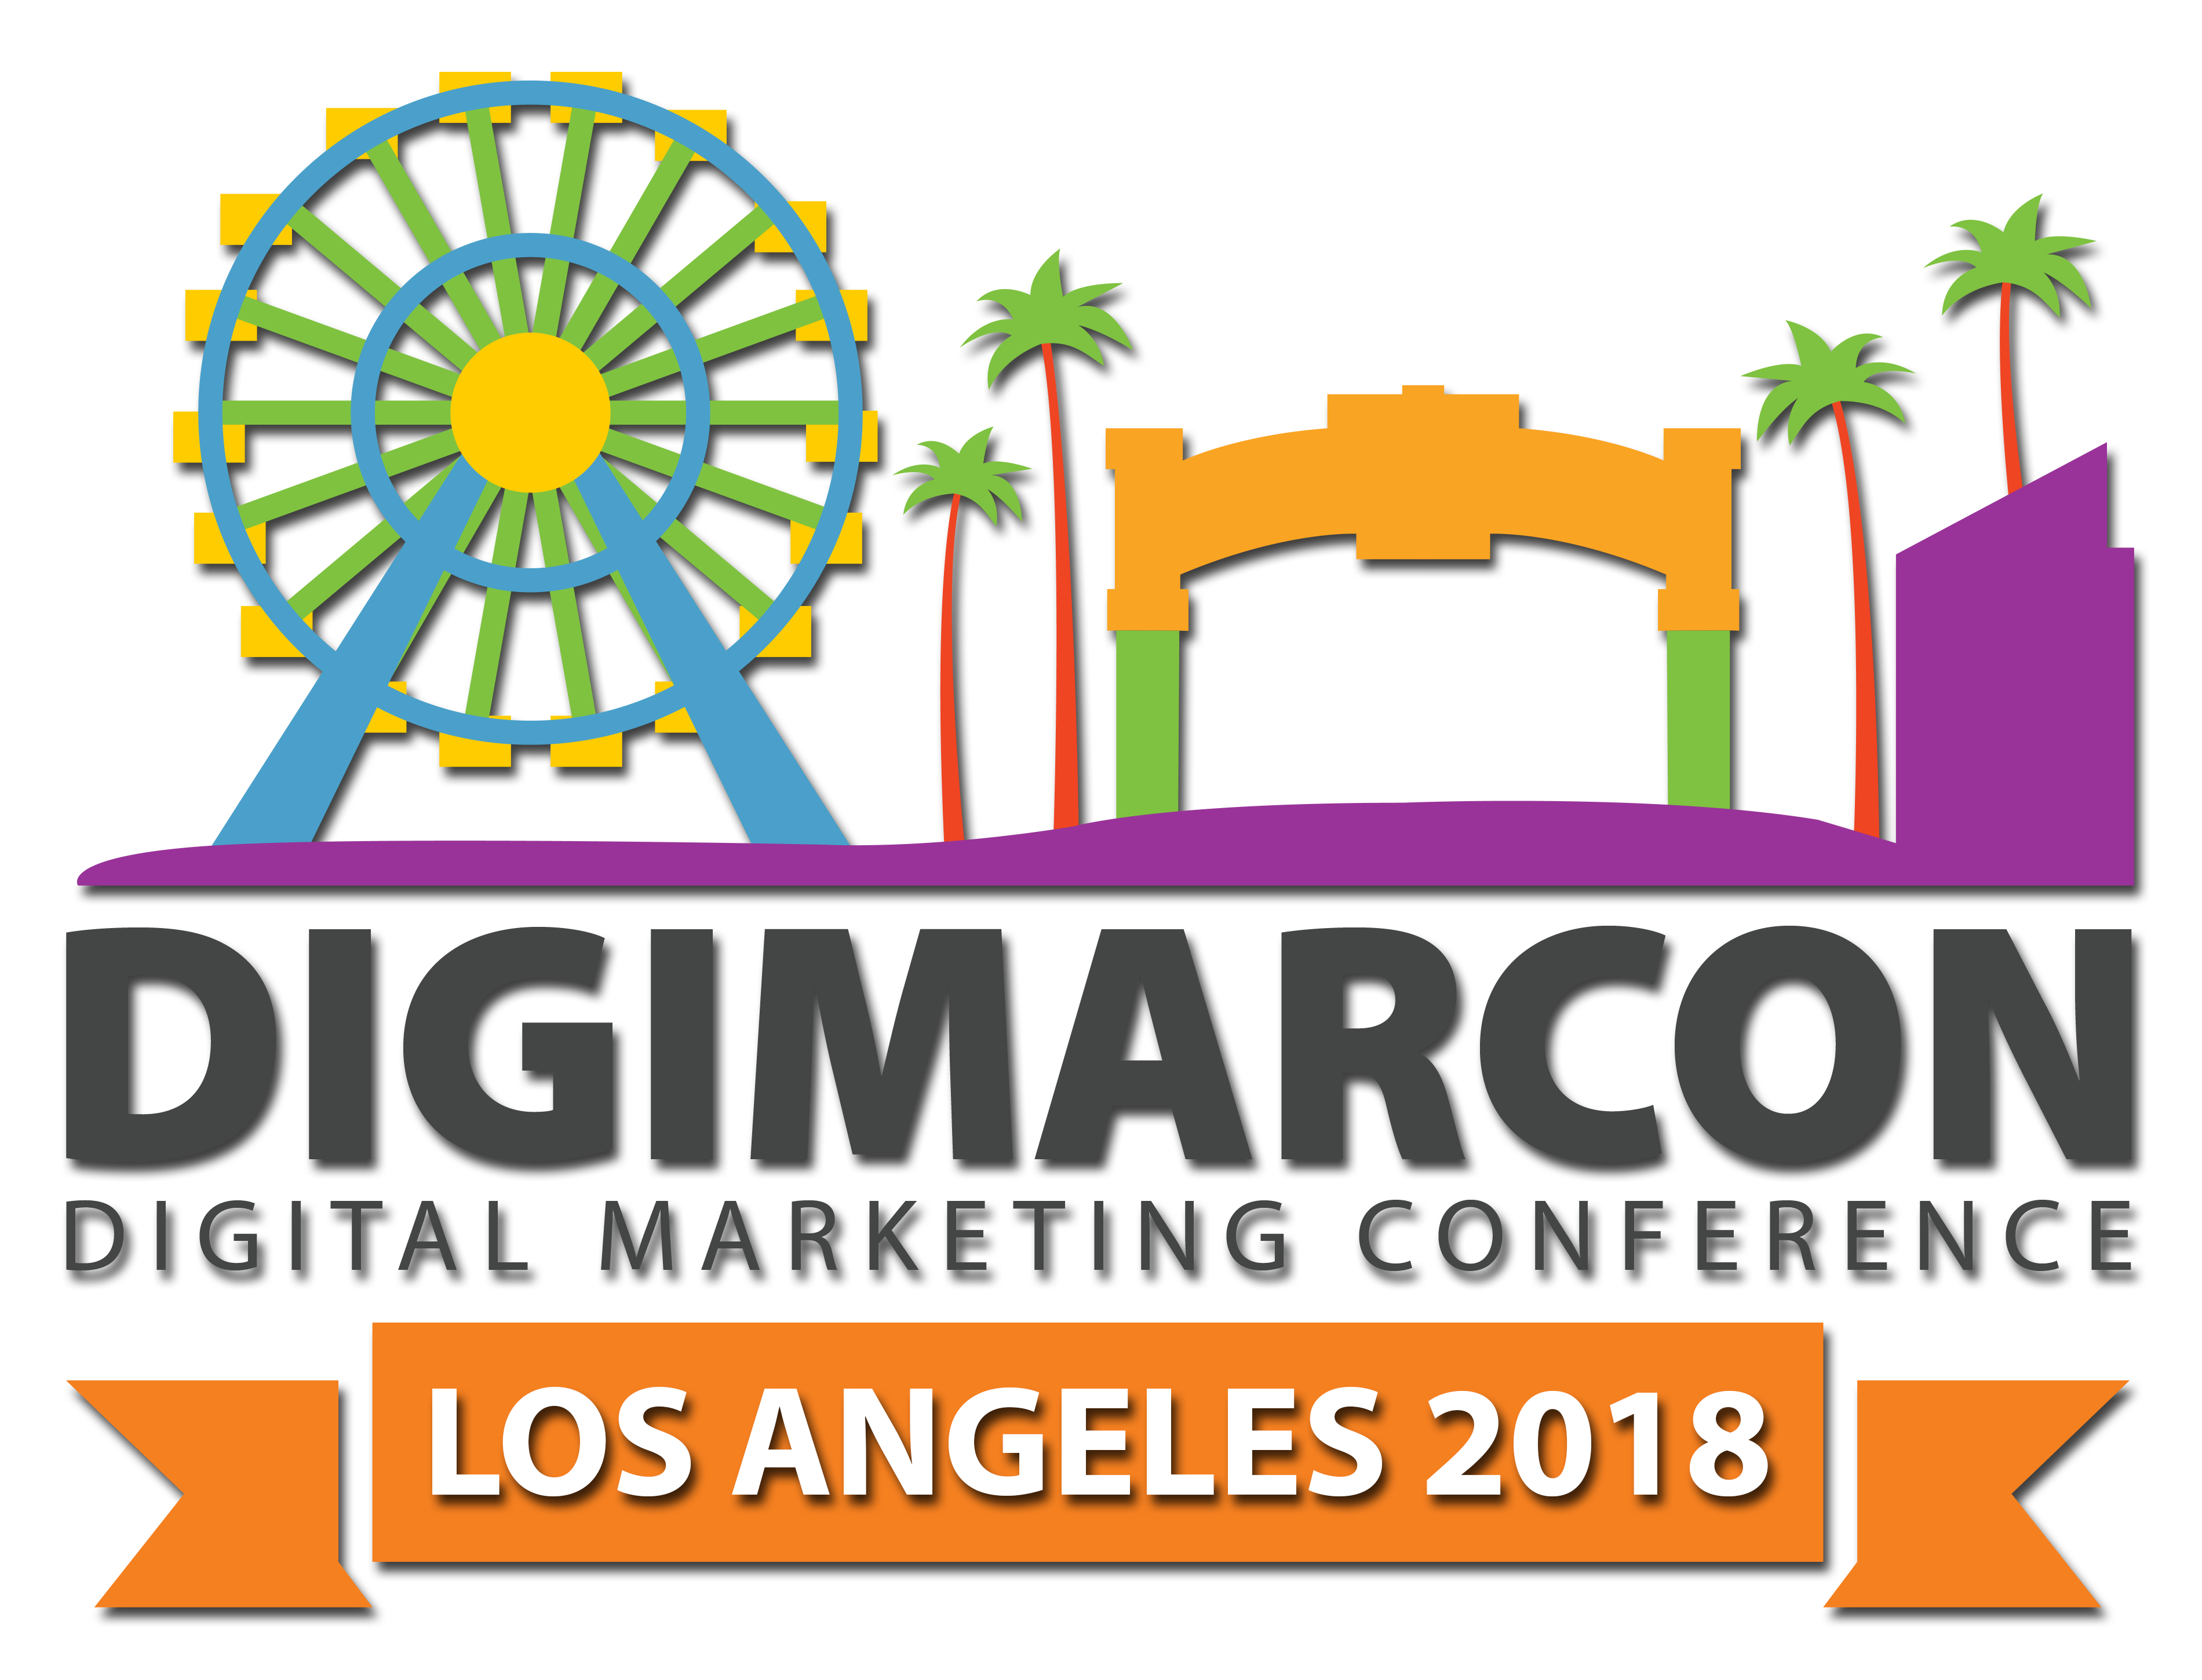 Conference clipart media conference. Digimarcon los angeles june